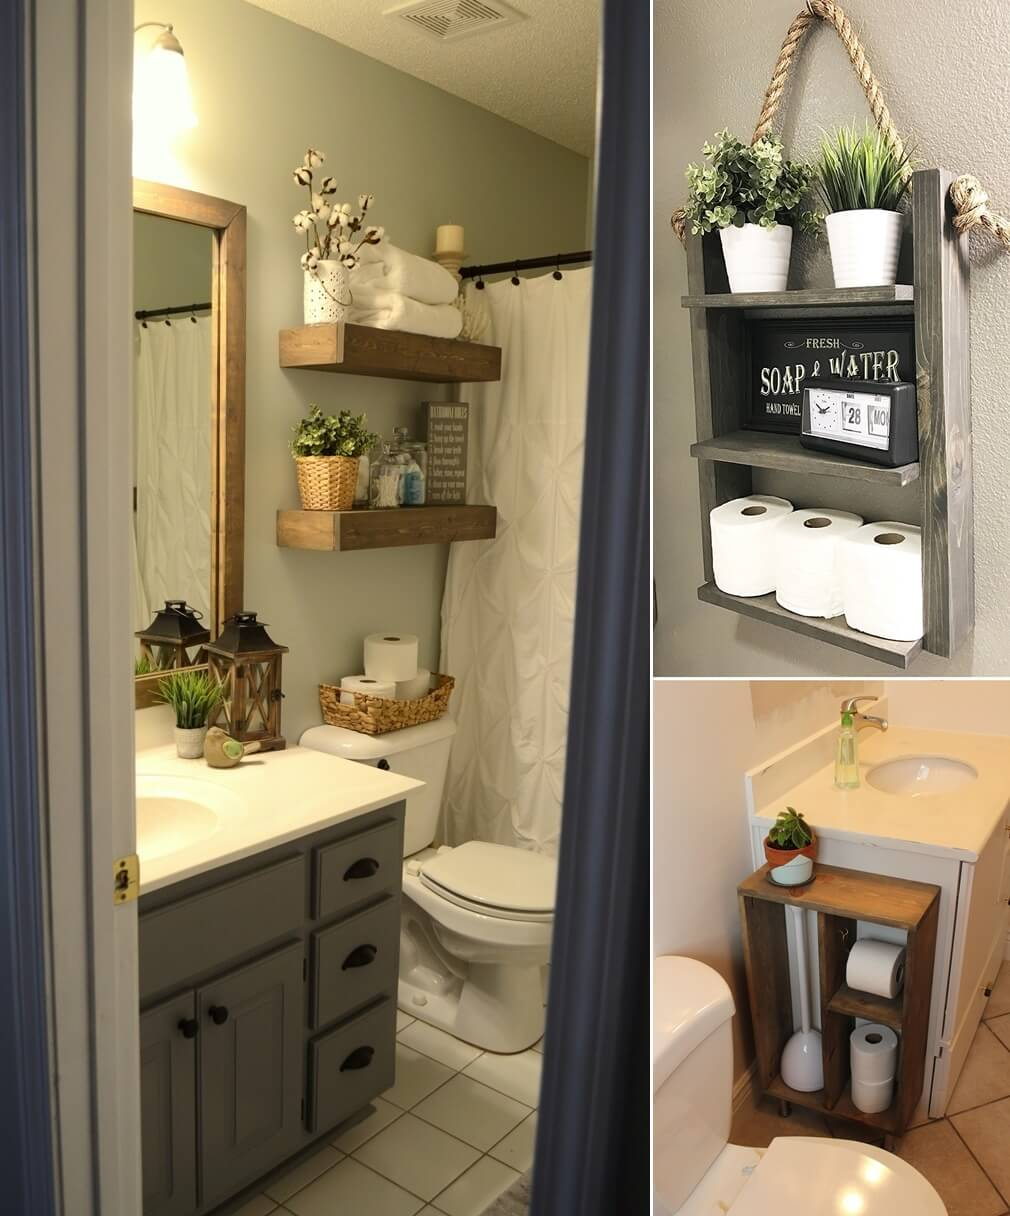 Simple Decorating Ideas To Make Your Room Look Amazing: 10 DIY Wood Projects For Your Bathroom